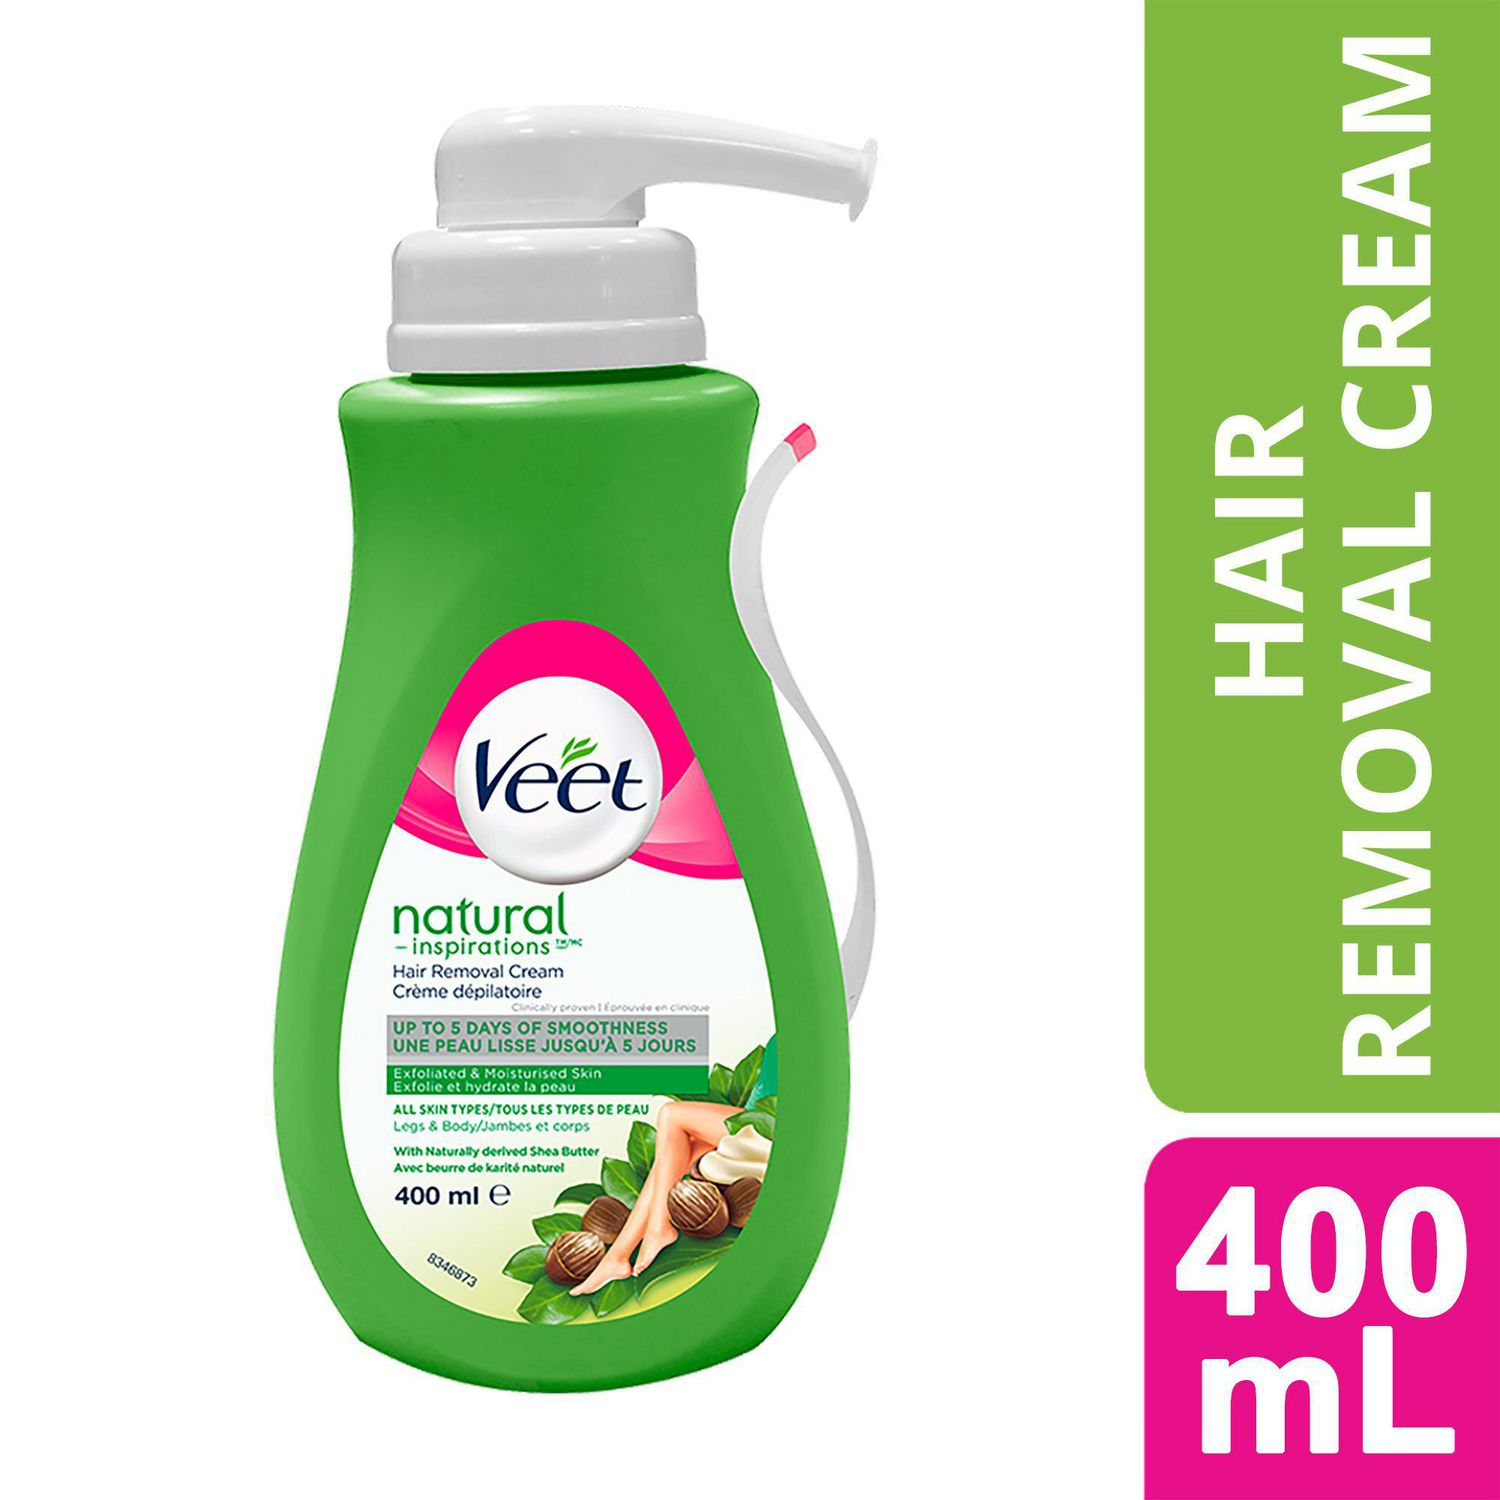 Veet Natural Inspirations Hair Removal Cream Legs Body Normal